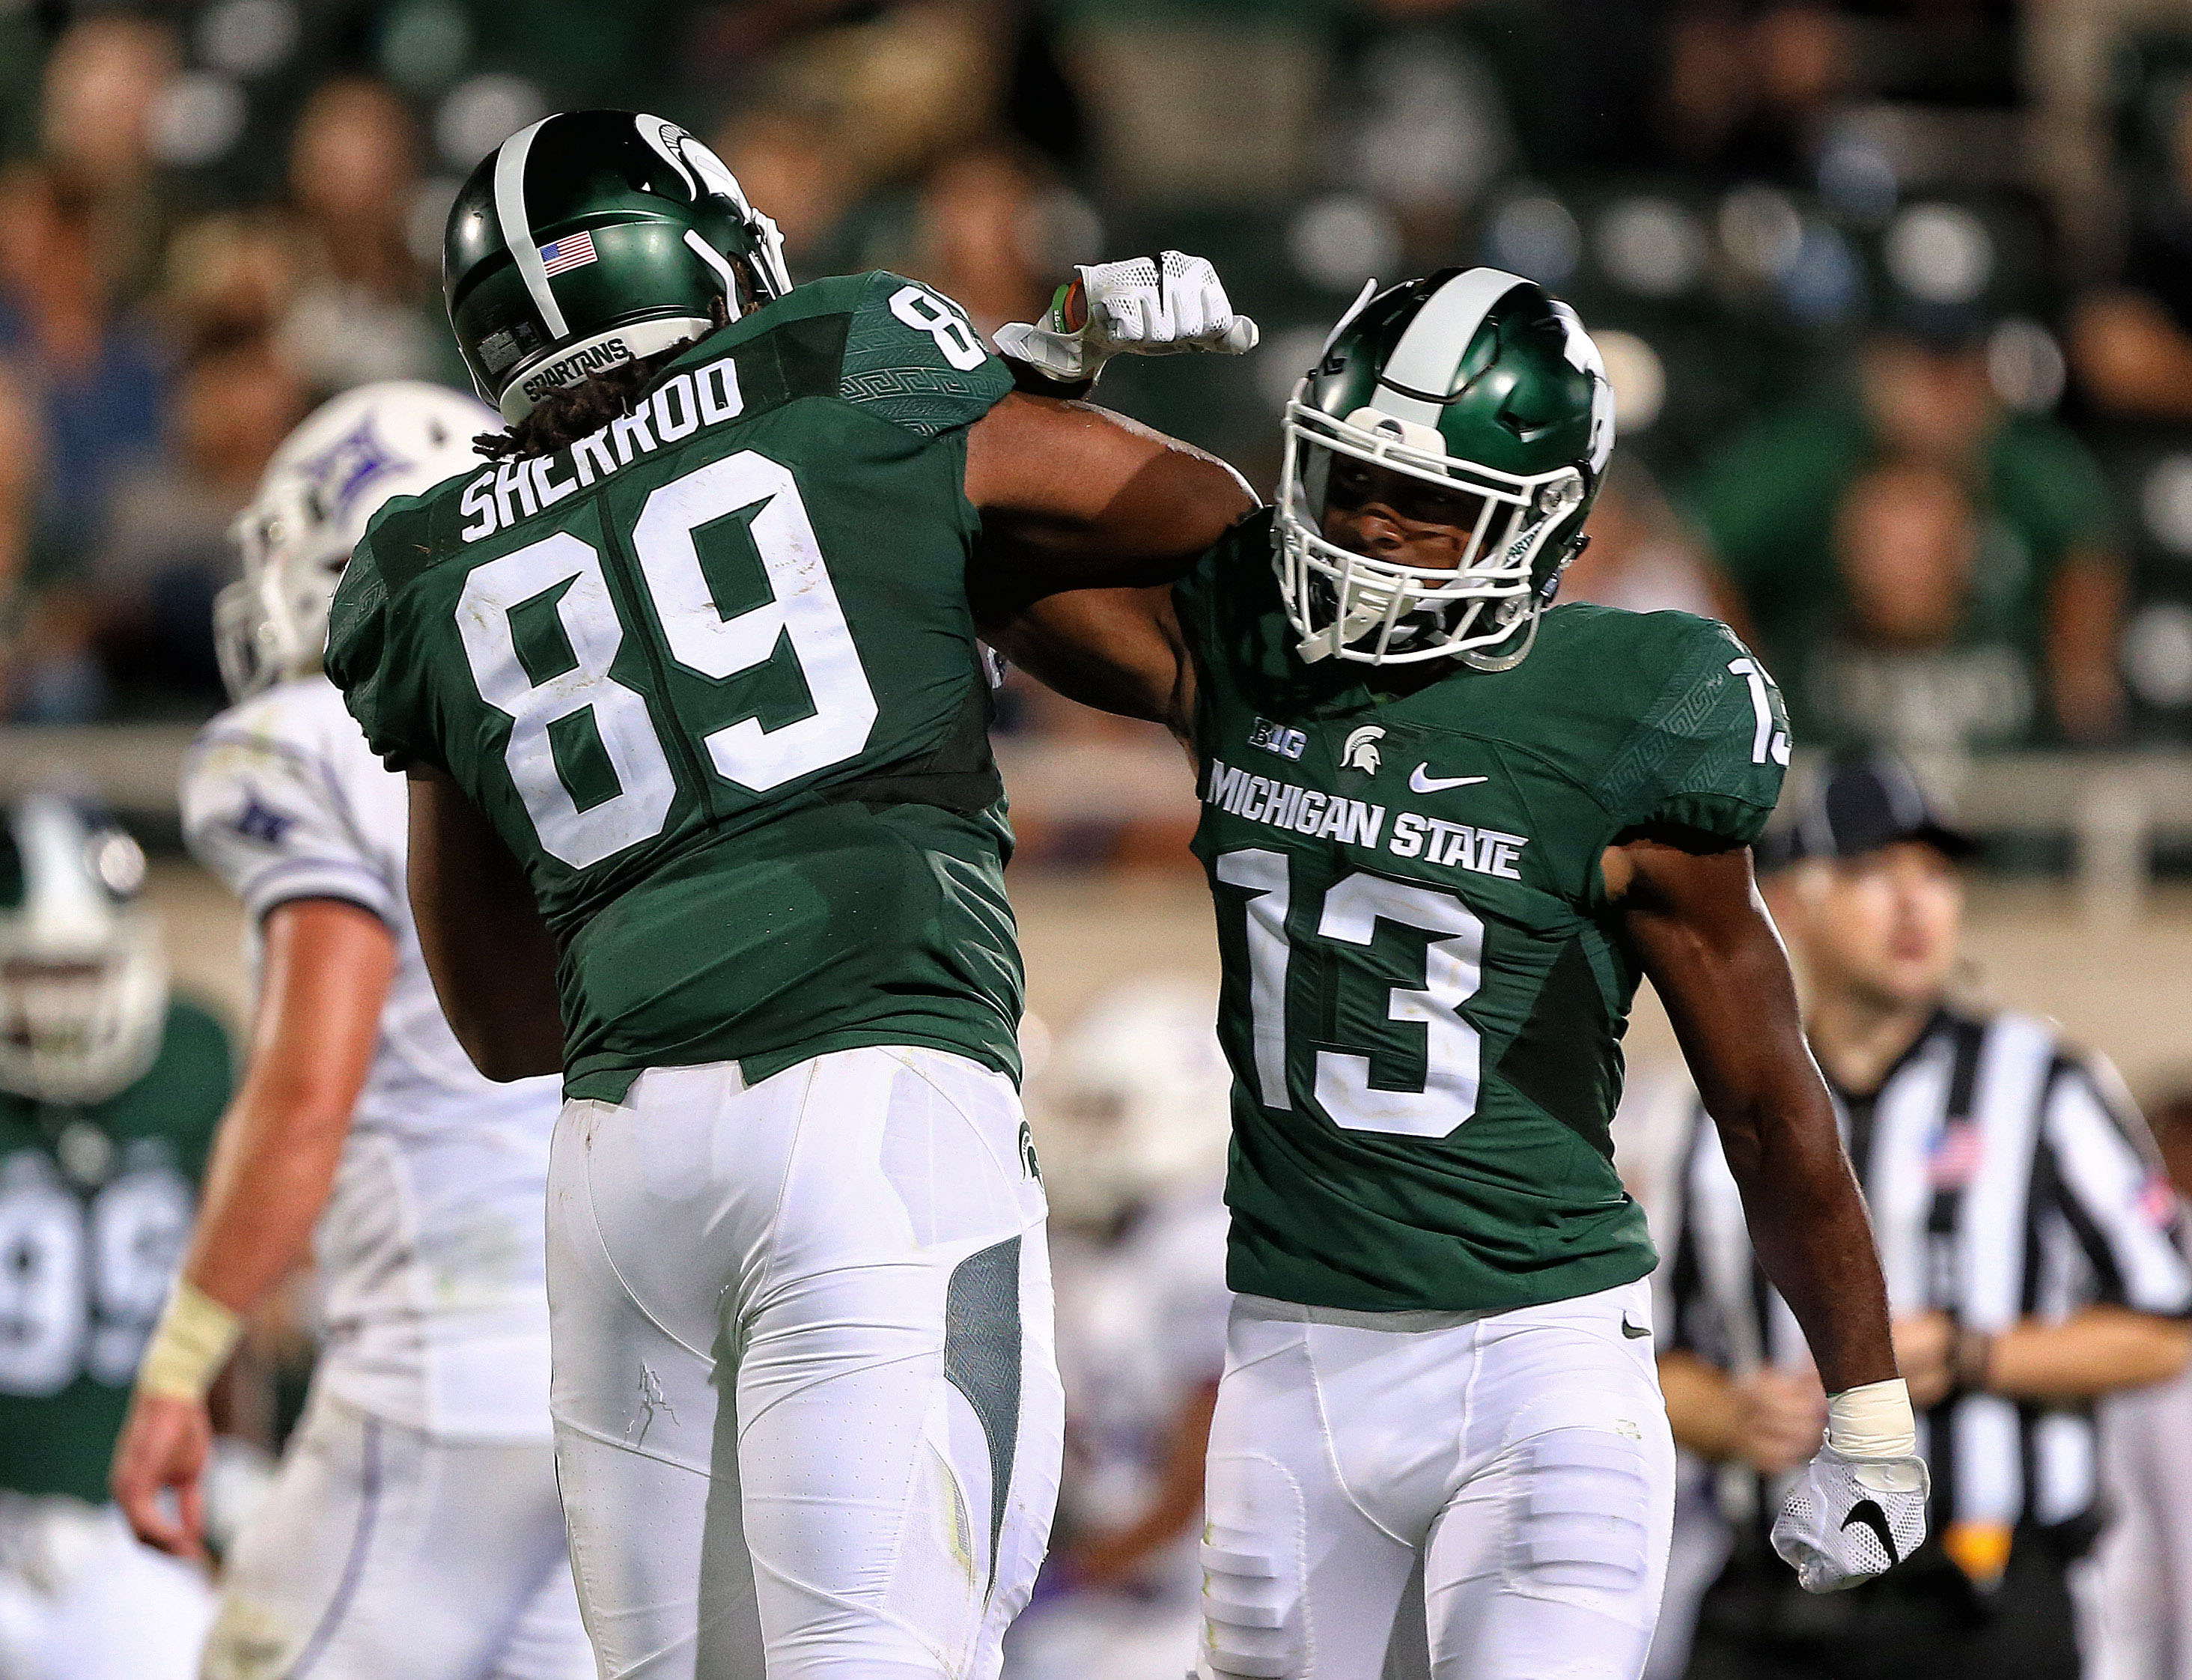 Sep 2, 2016; East Lansing, MI, USA; Michigan State Spartans defensive end Gabe Sherrod (89) celebrates with cornerback Vayante Copeland (13) after a defense stop during the second half against the Furman Paladins at Spartan Stadium. Mandatory Credit: Mike Carter-USA TODAY Sports